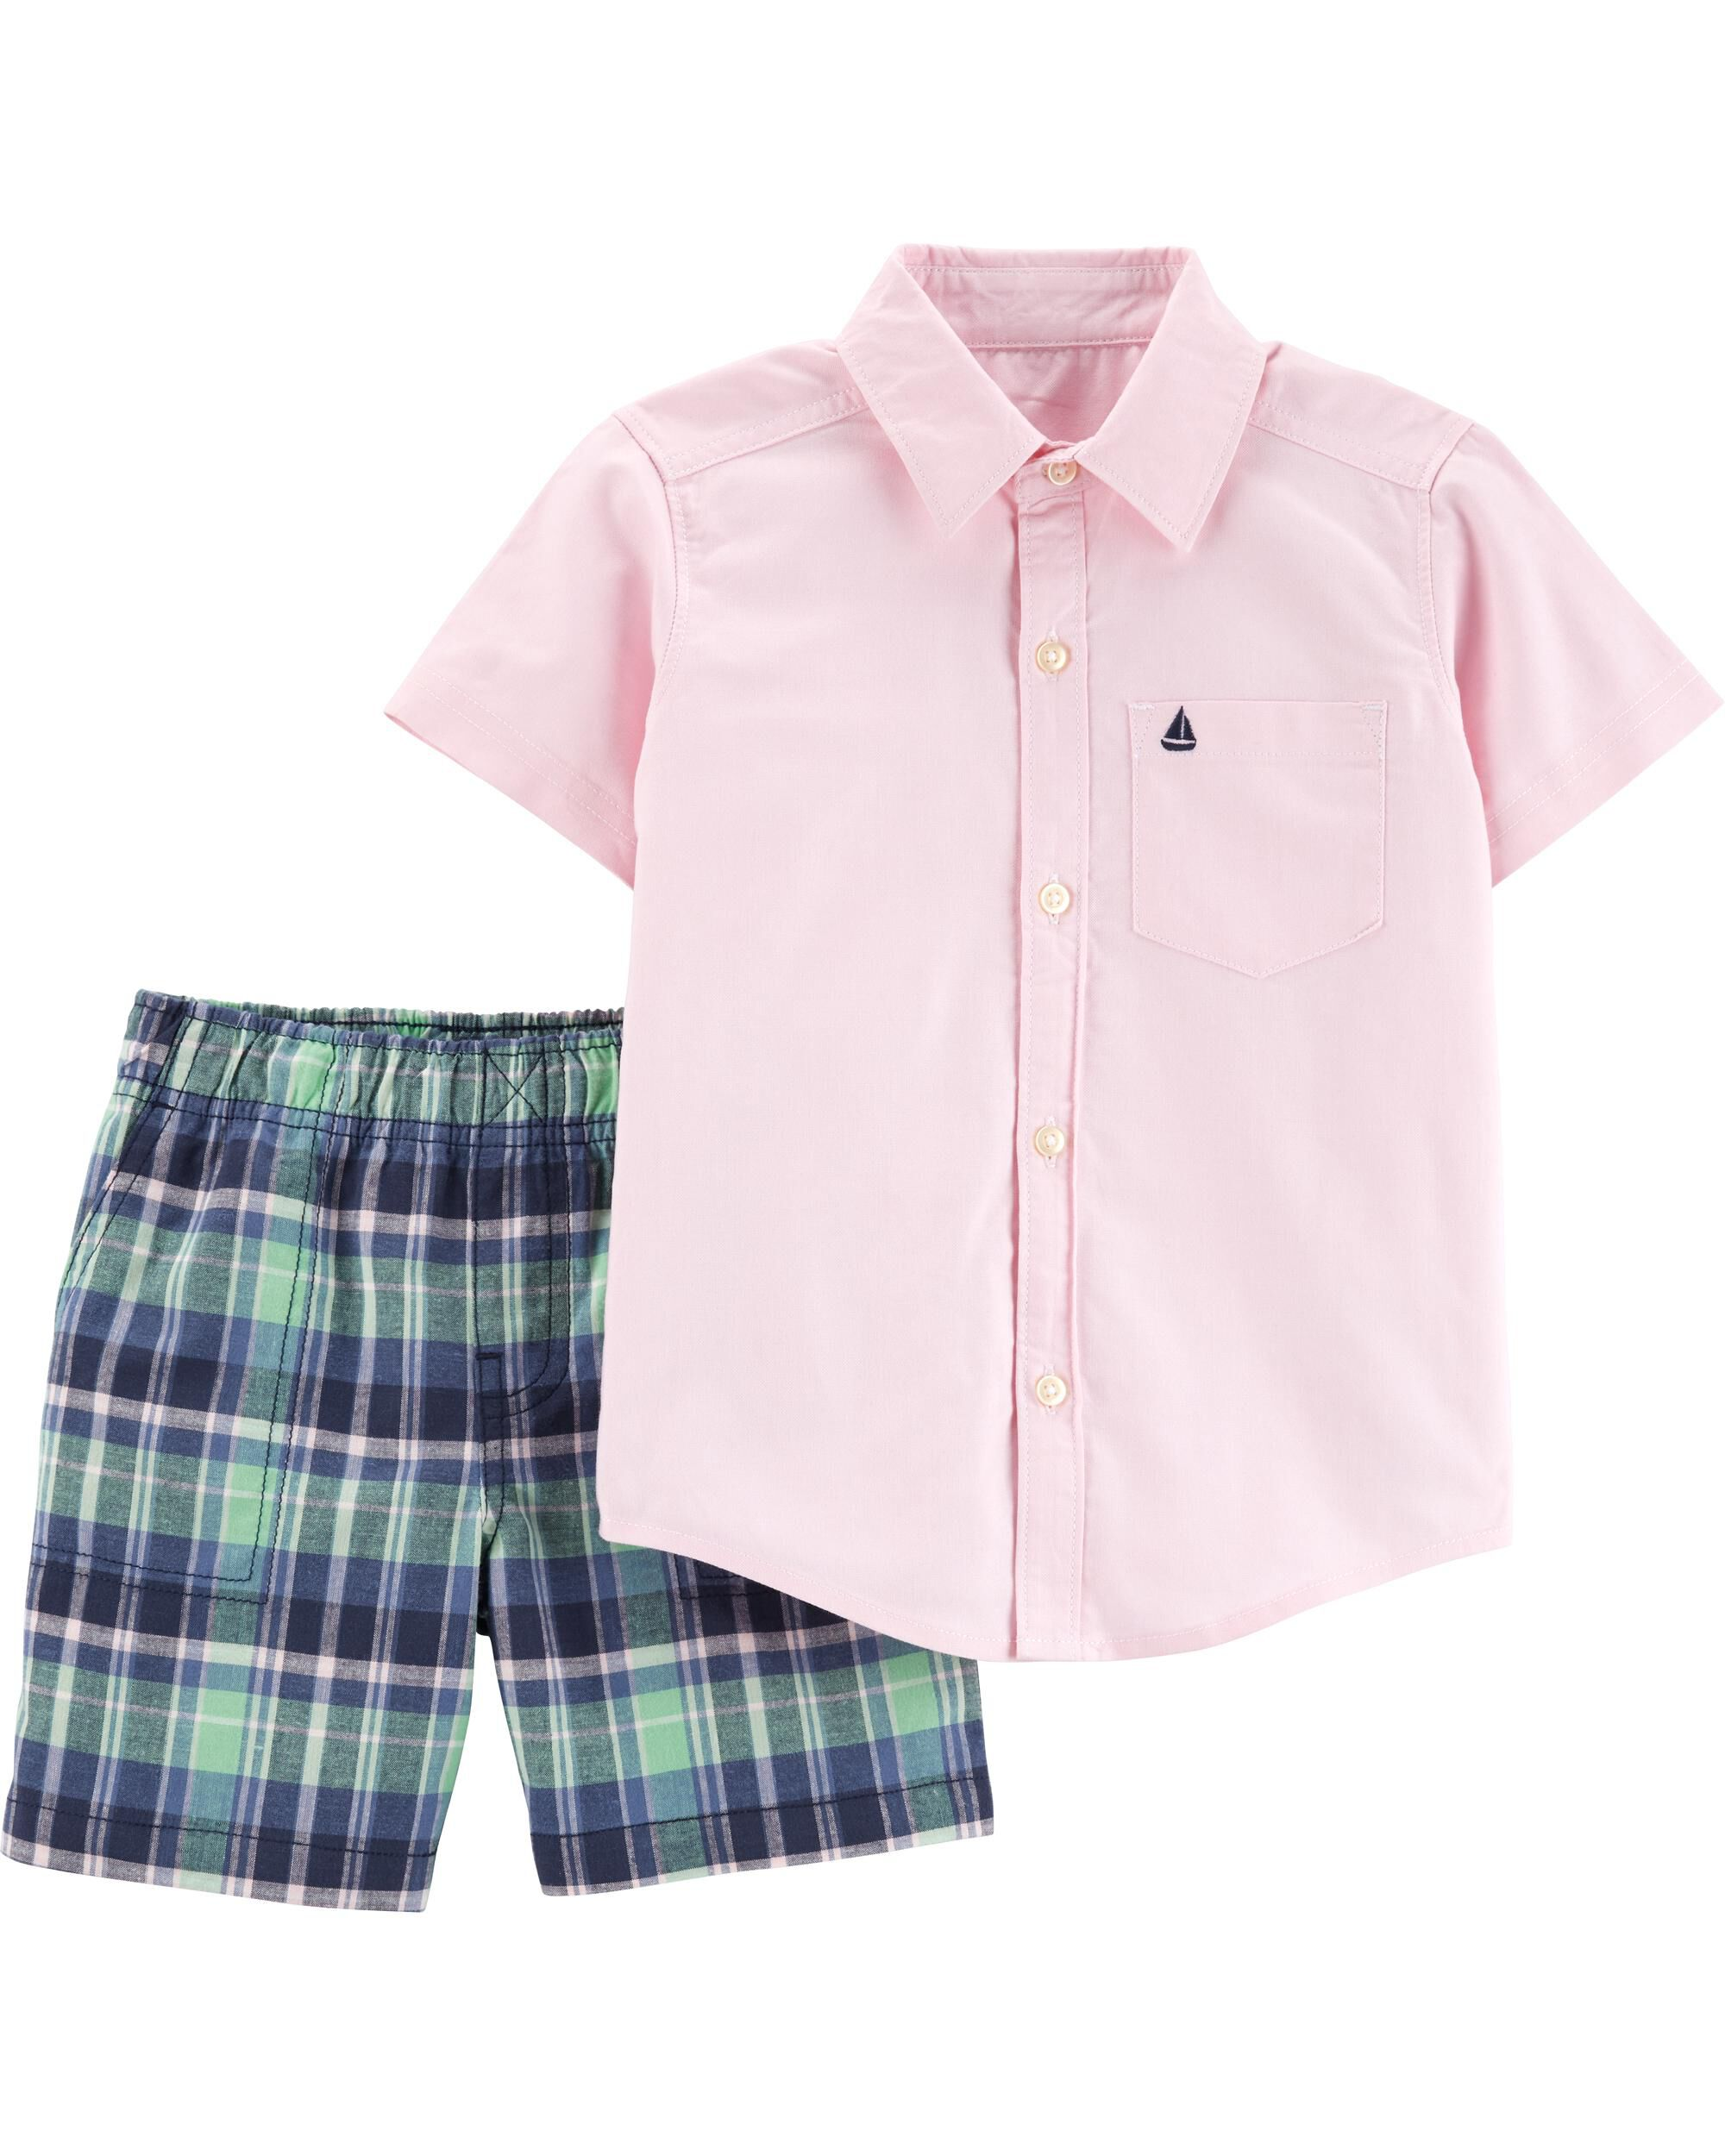 Baby & Toddler Clothing Clothing, Shoes & Accessories 2019 Latest Design Carters Toddler Boy Pants 2t Lot Of 2